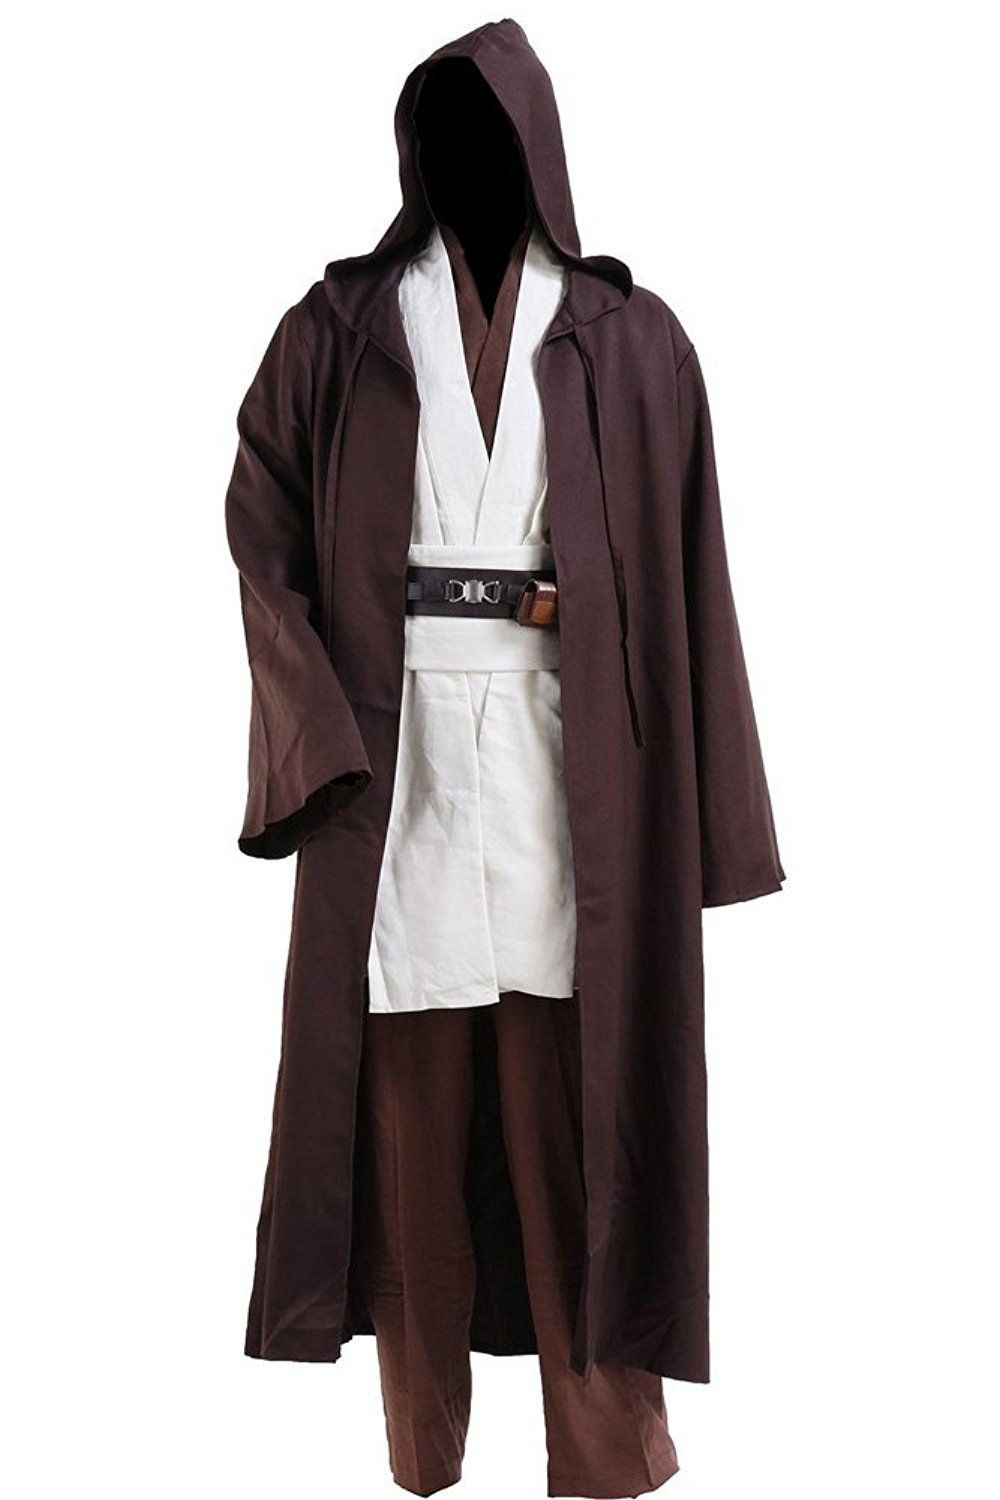 81caddaeef Cosplay Star Wars Jedi Robe Costume Obi-Wan Kenobi Halloween Outfit  Including  Inner Tunic+Outer Tunic+Tabard+Belt(simple version)+Pant+Robe  Please check ...